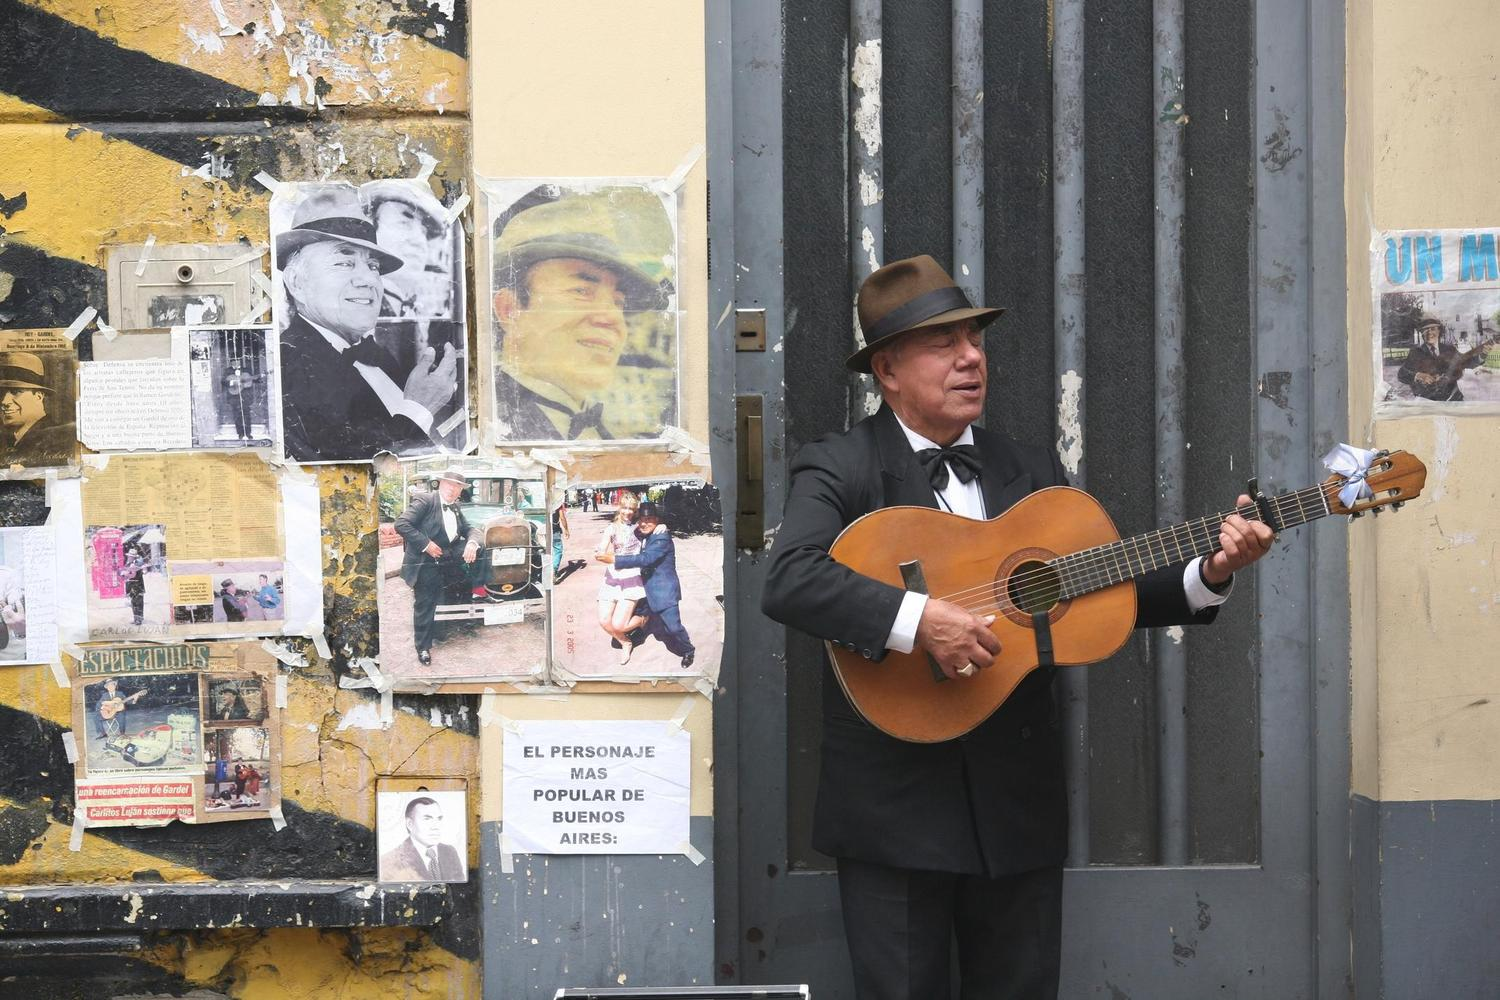 Crooning on the streets of Buenos Aires